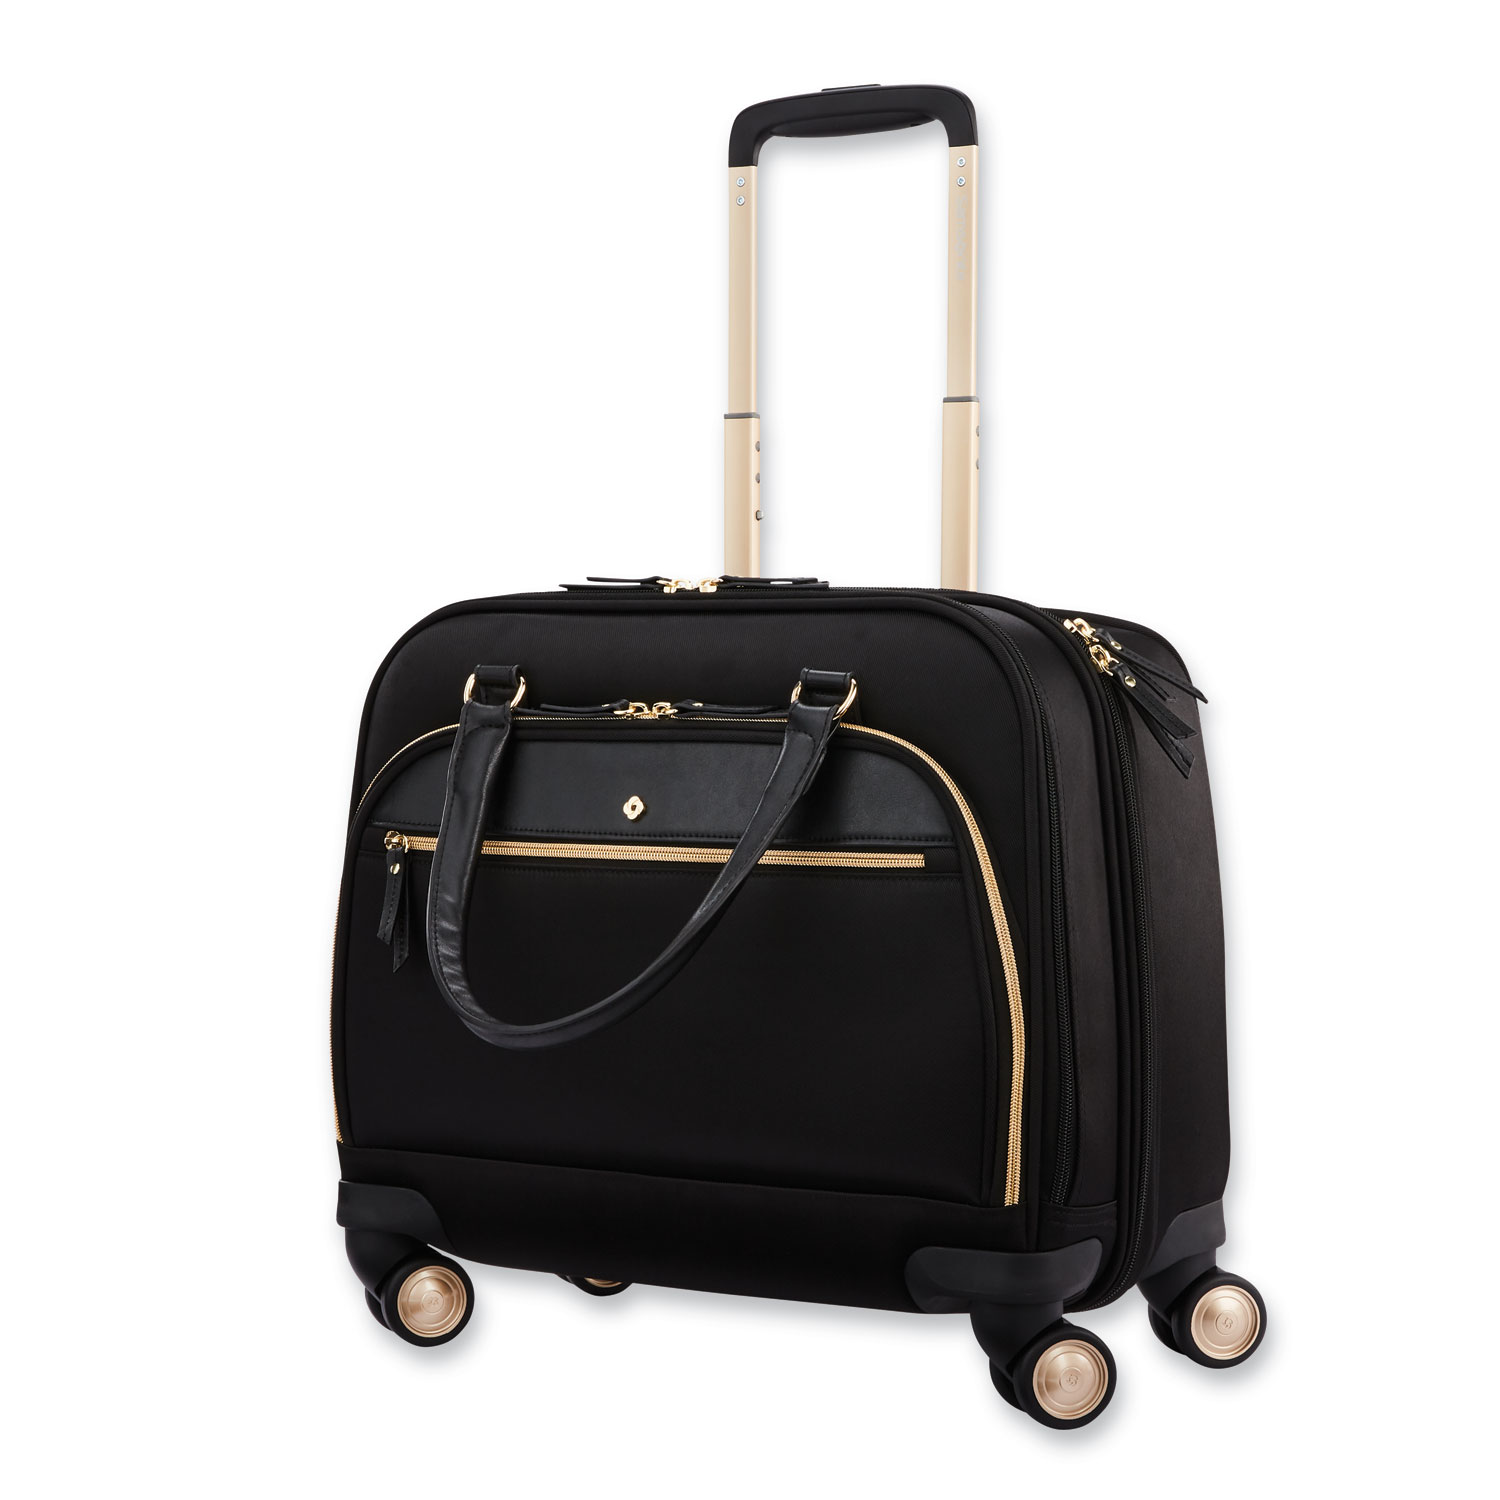 """Mobile Solution Mobile Office Case, Fits Laptops up to 15.6"""", 16.5 x 7 x 15.5, Black"""